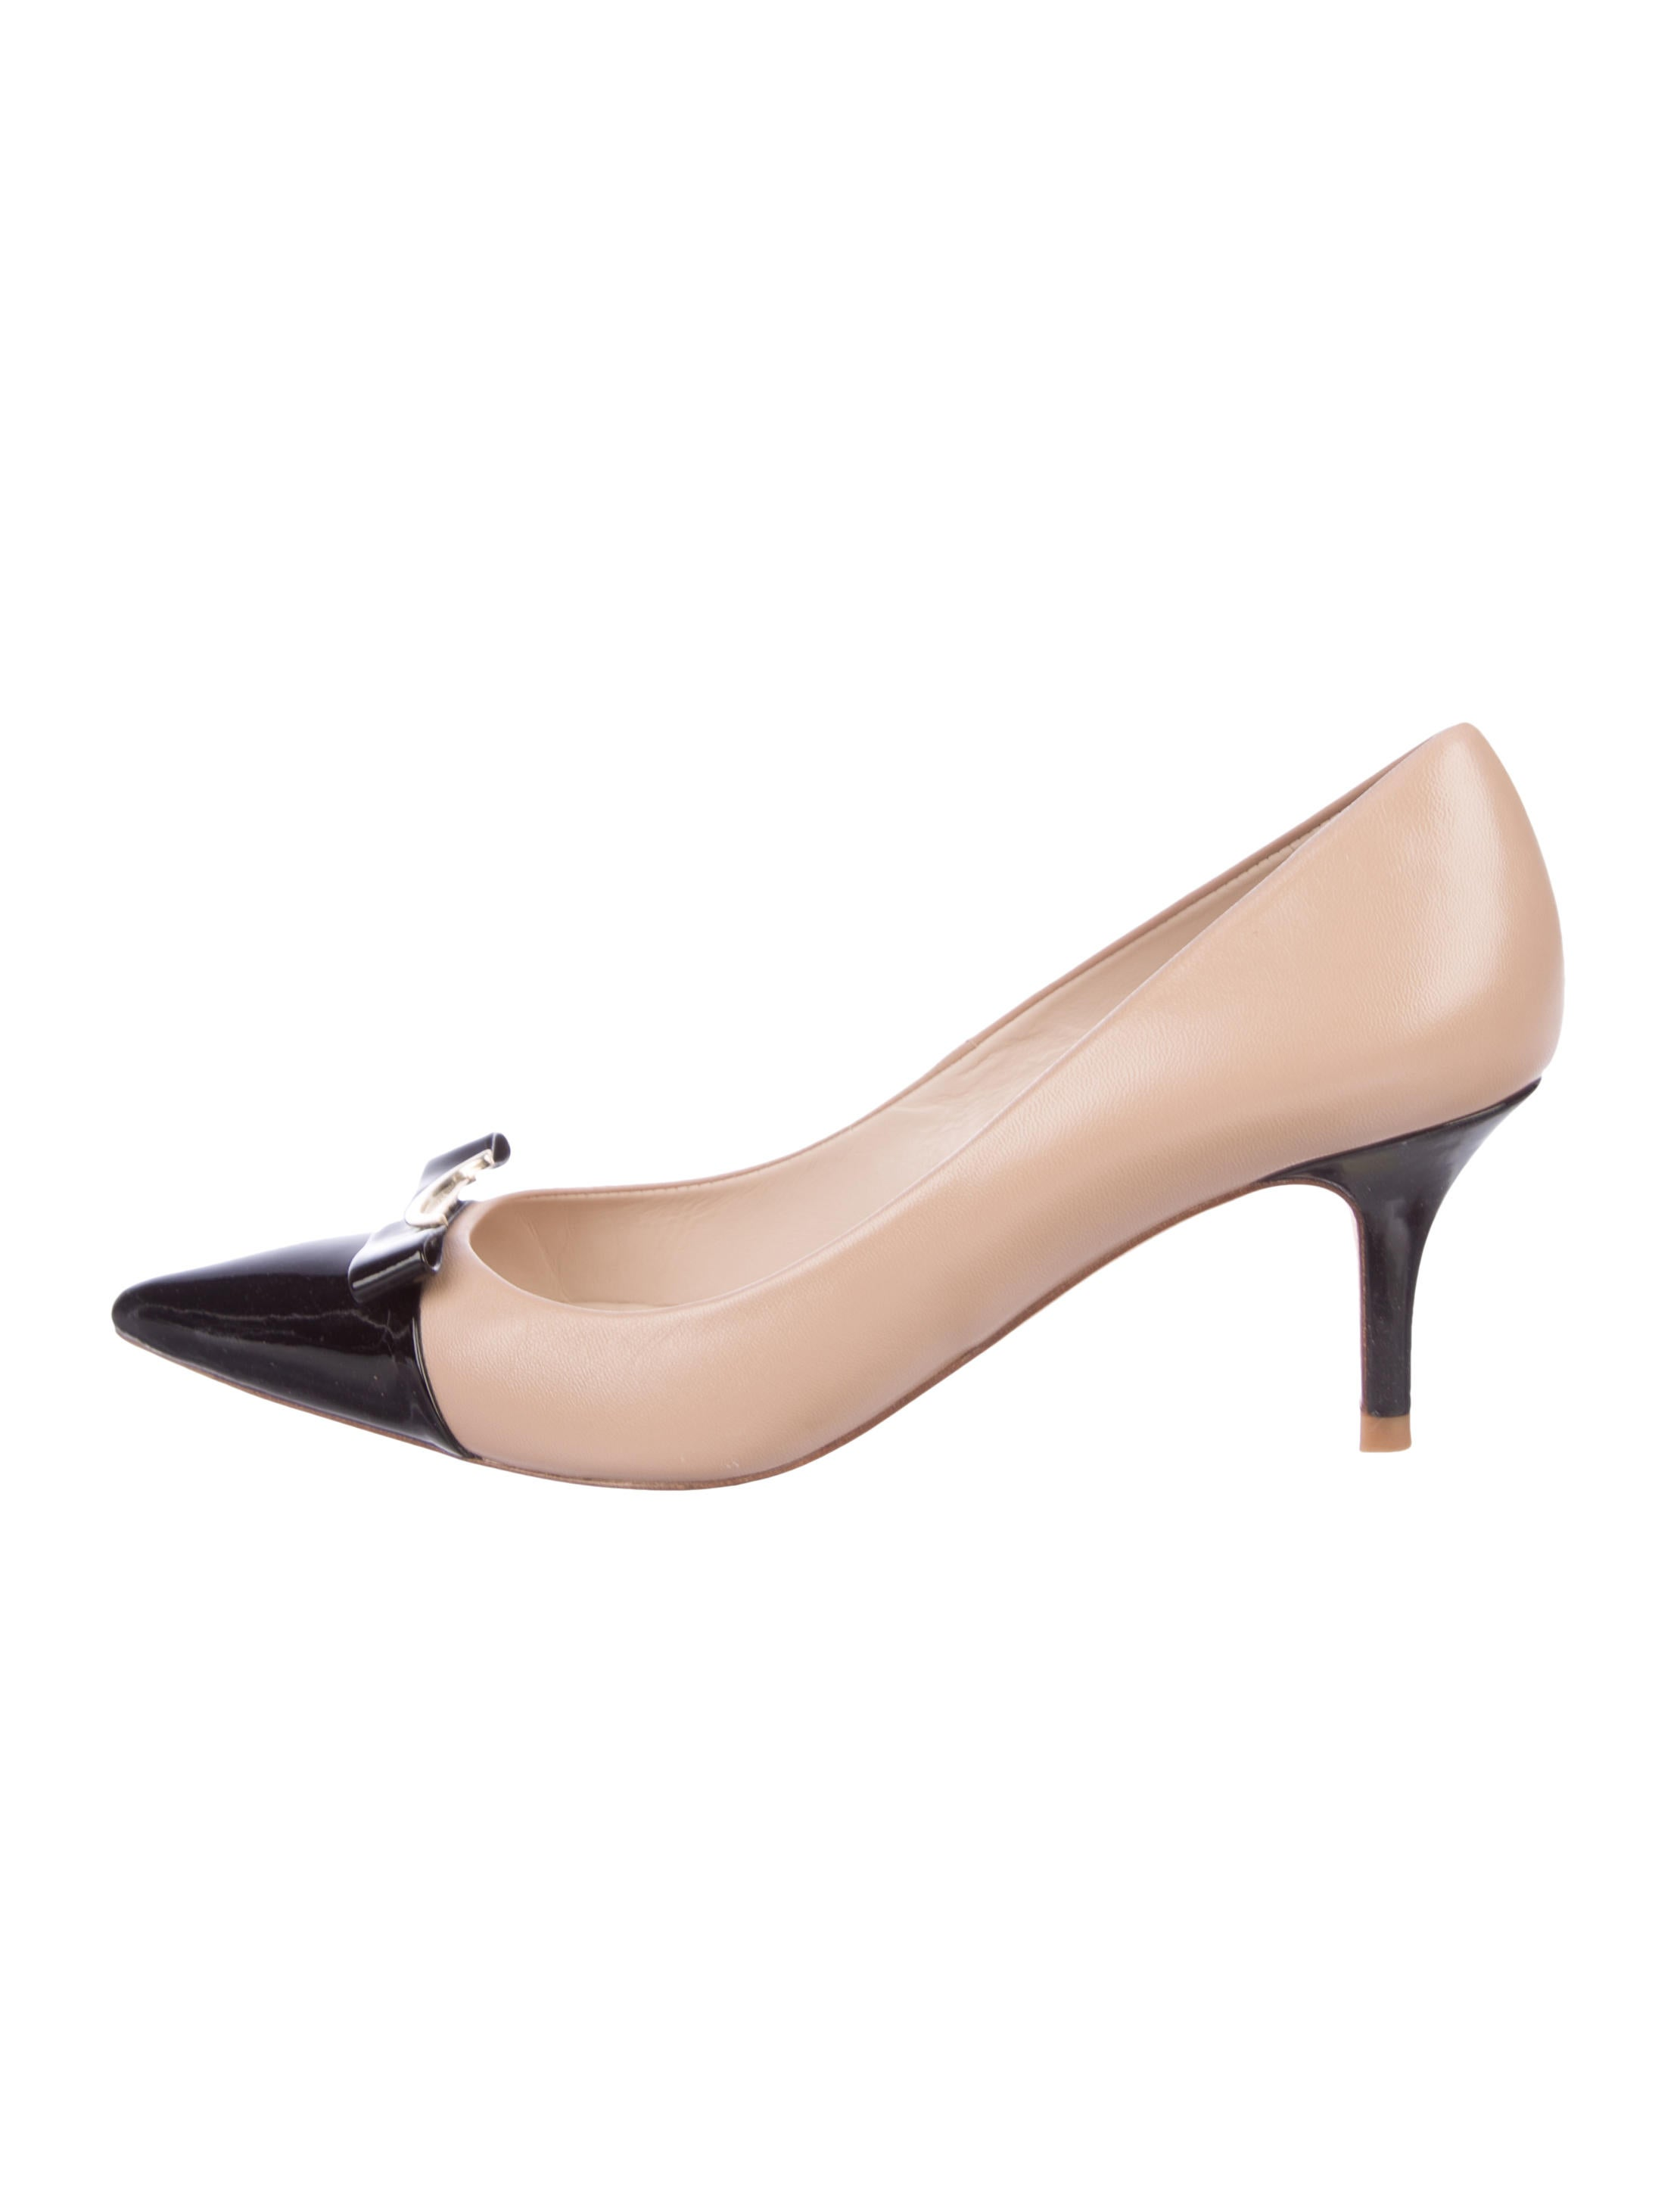 finishline cheap price L.K. Bennett Roxy Cap-Toe Pumps new many kinds of for sale footaction cheap online MrwWZa47